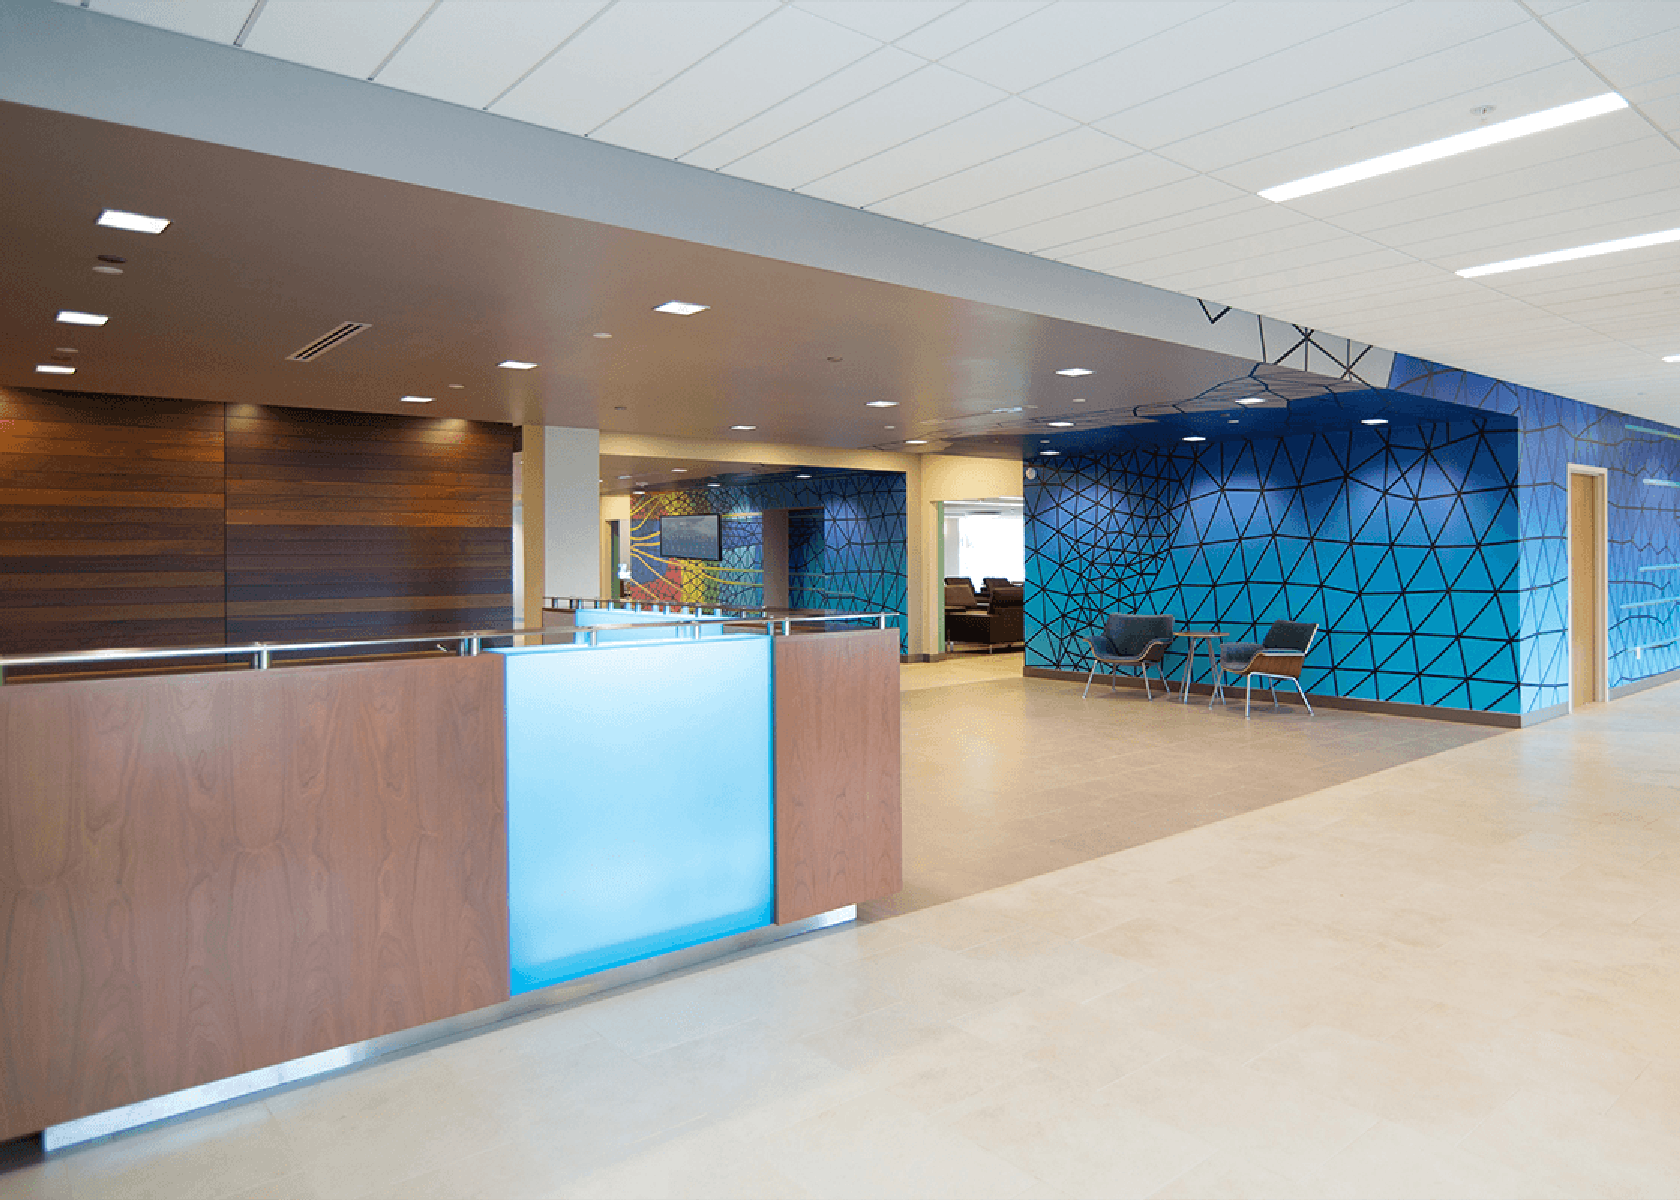 reception and lobby with geometric wall patterns